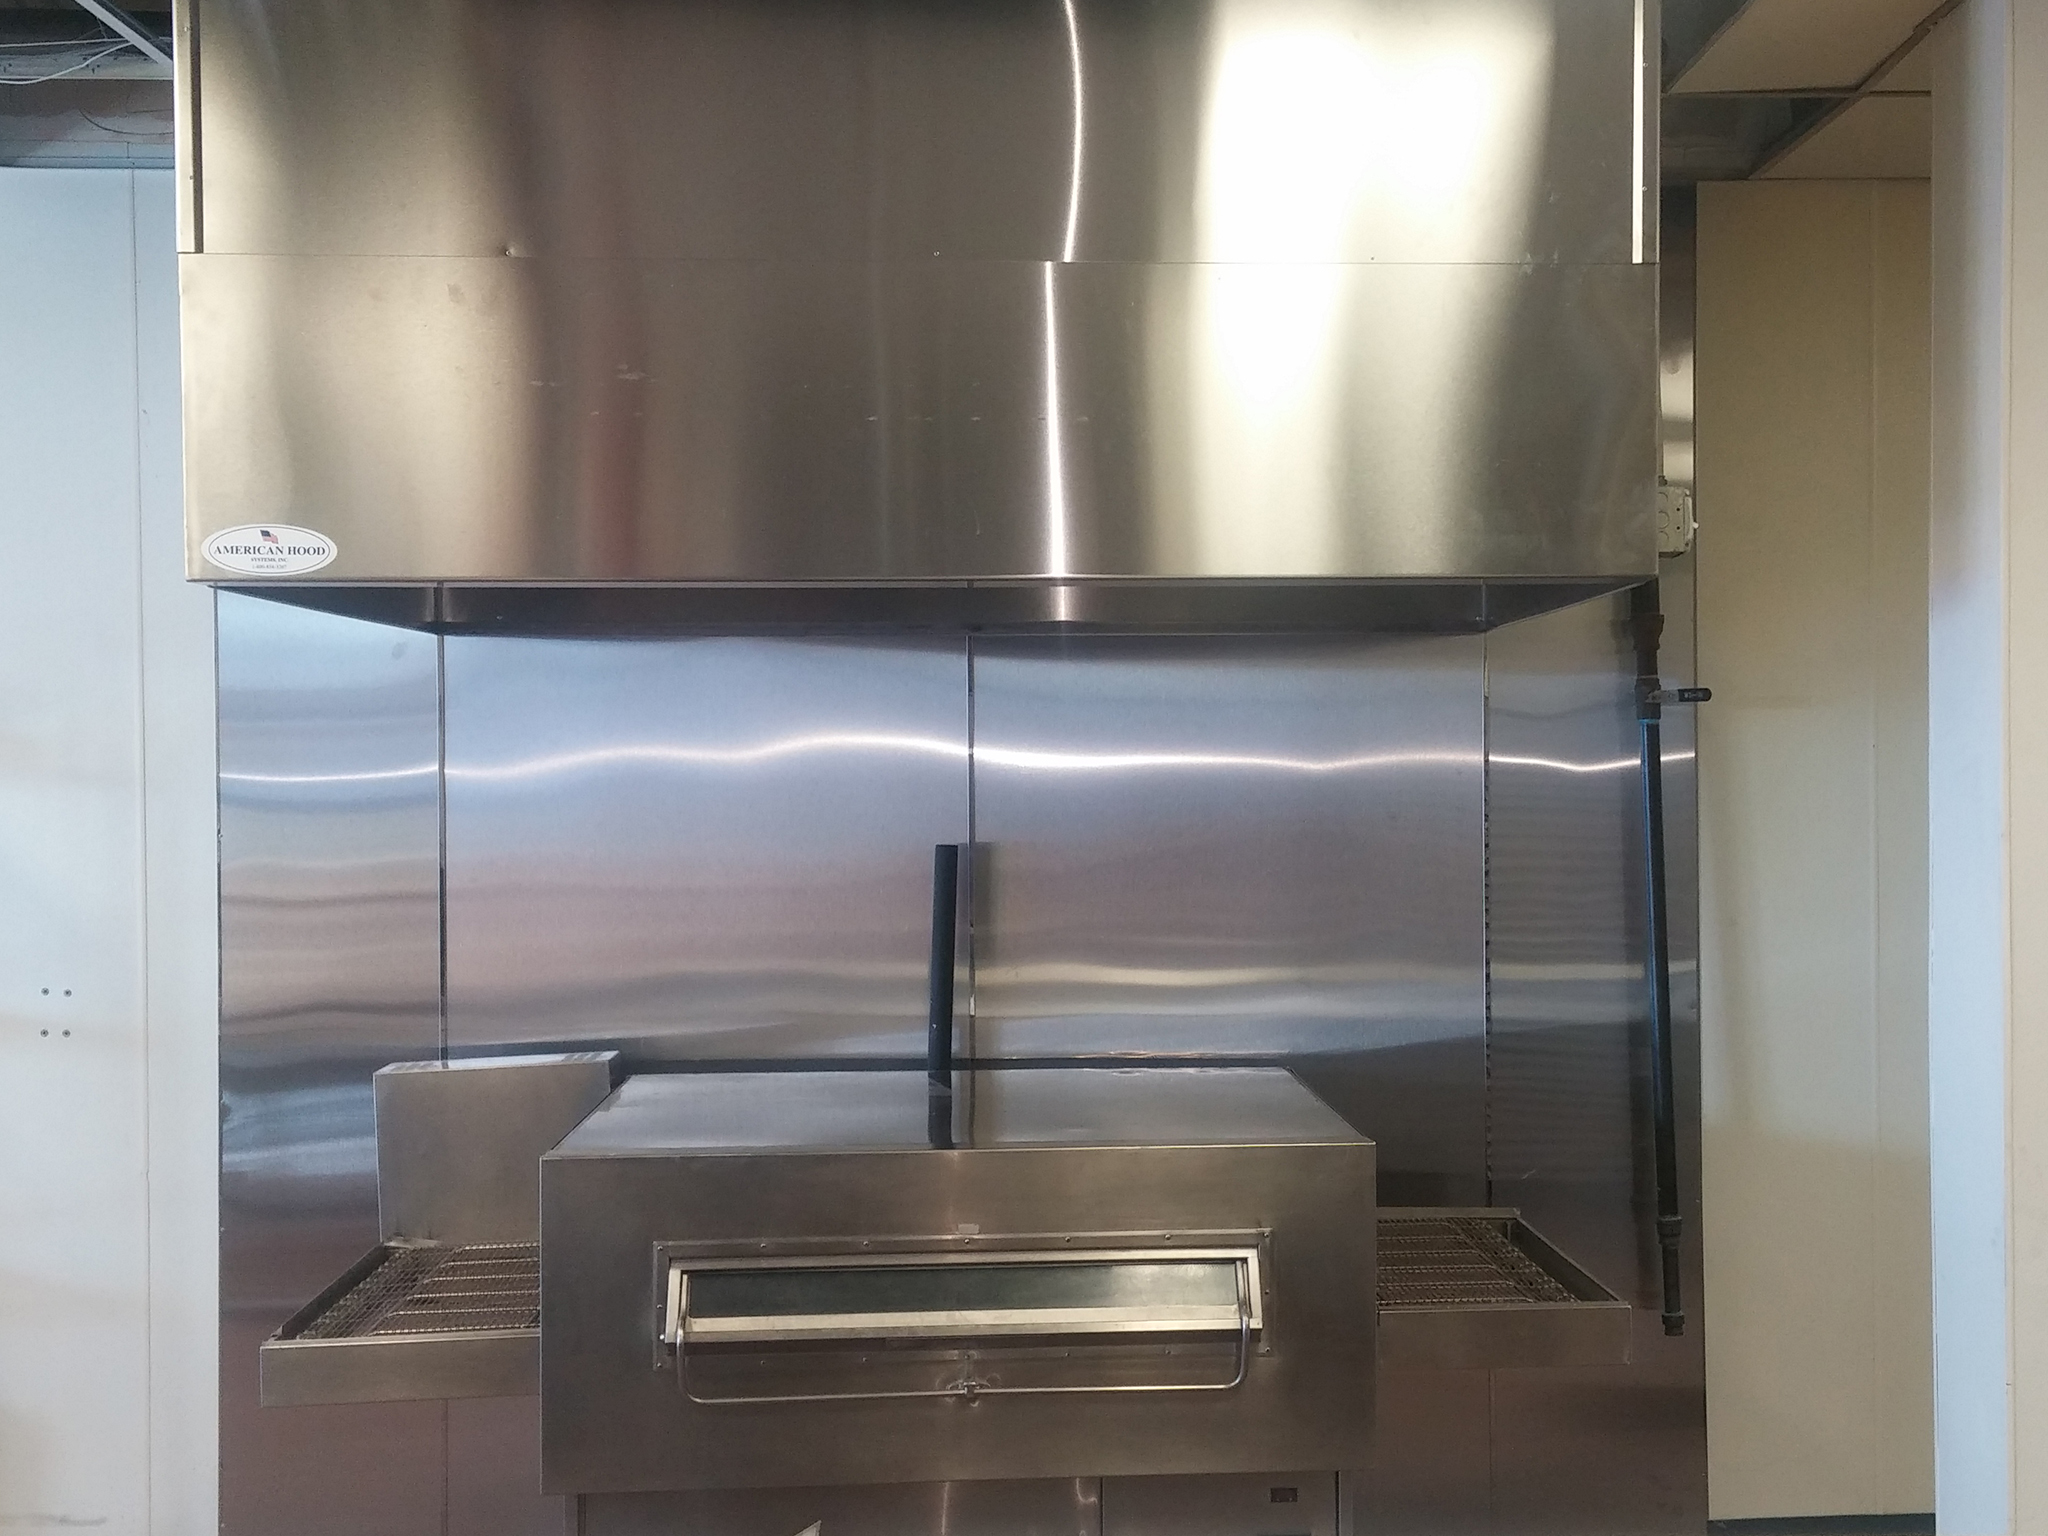 Kitchen Exhaust Hood Duct Installation Cost Mycoffeepot Org